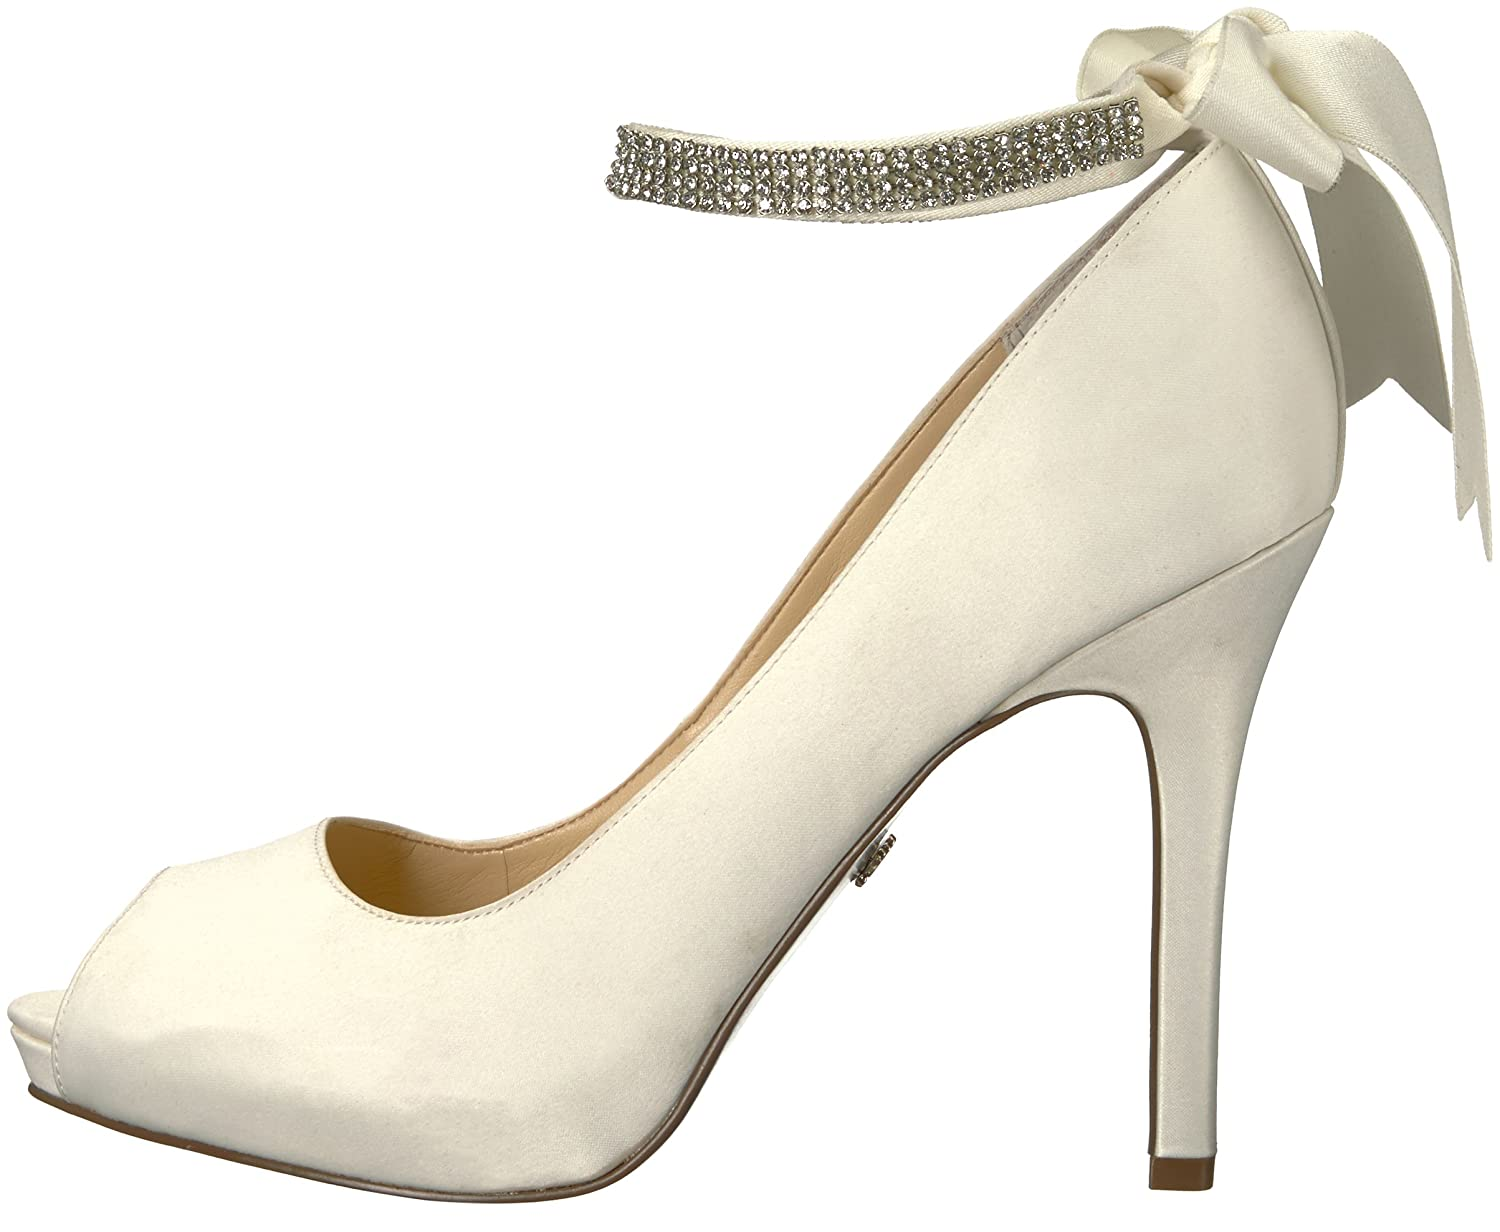 Nina damen 's Karen-ls Dress Pump Ivory 10 10 10 m US eeb2d7